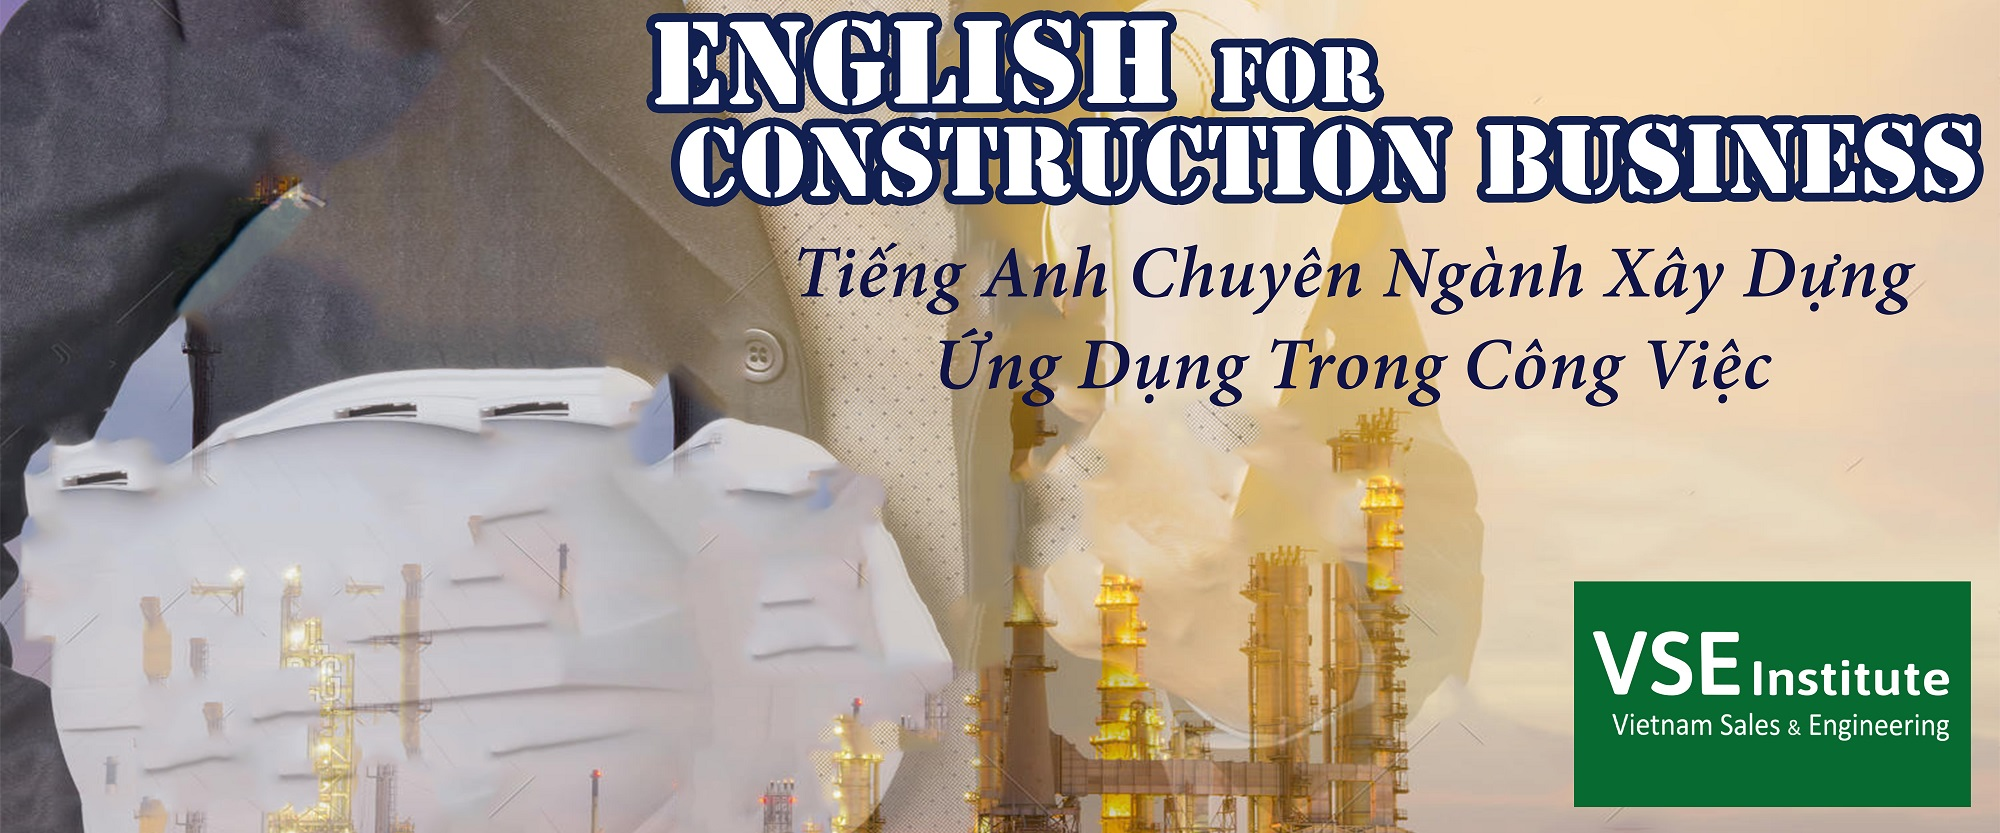 ENGLISH FOR CONSTRUCTION BUSINESS _ 0621